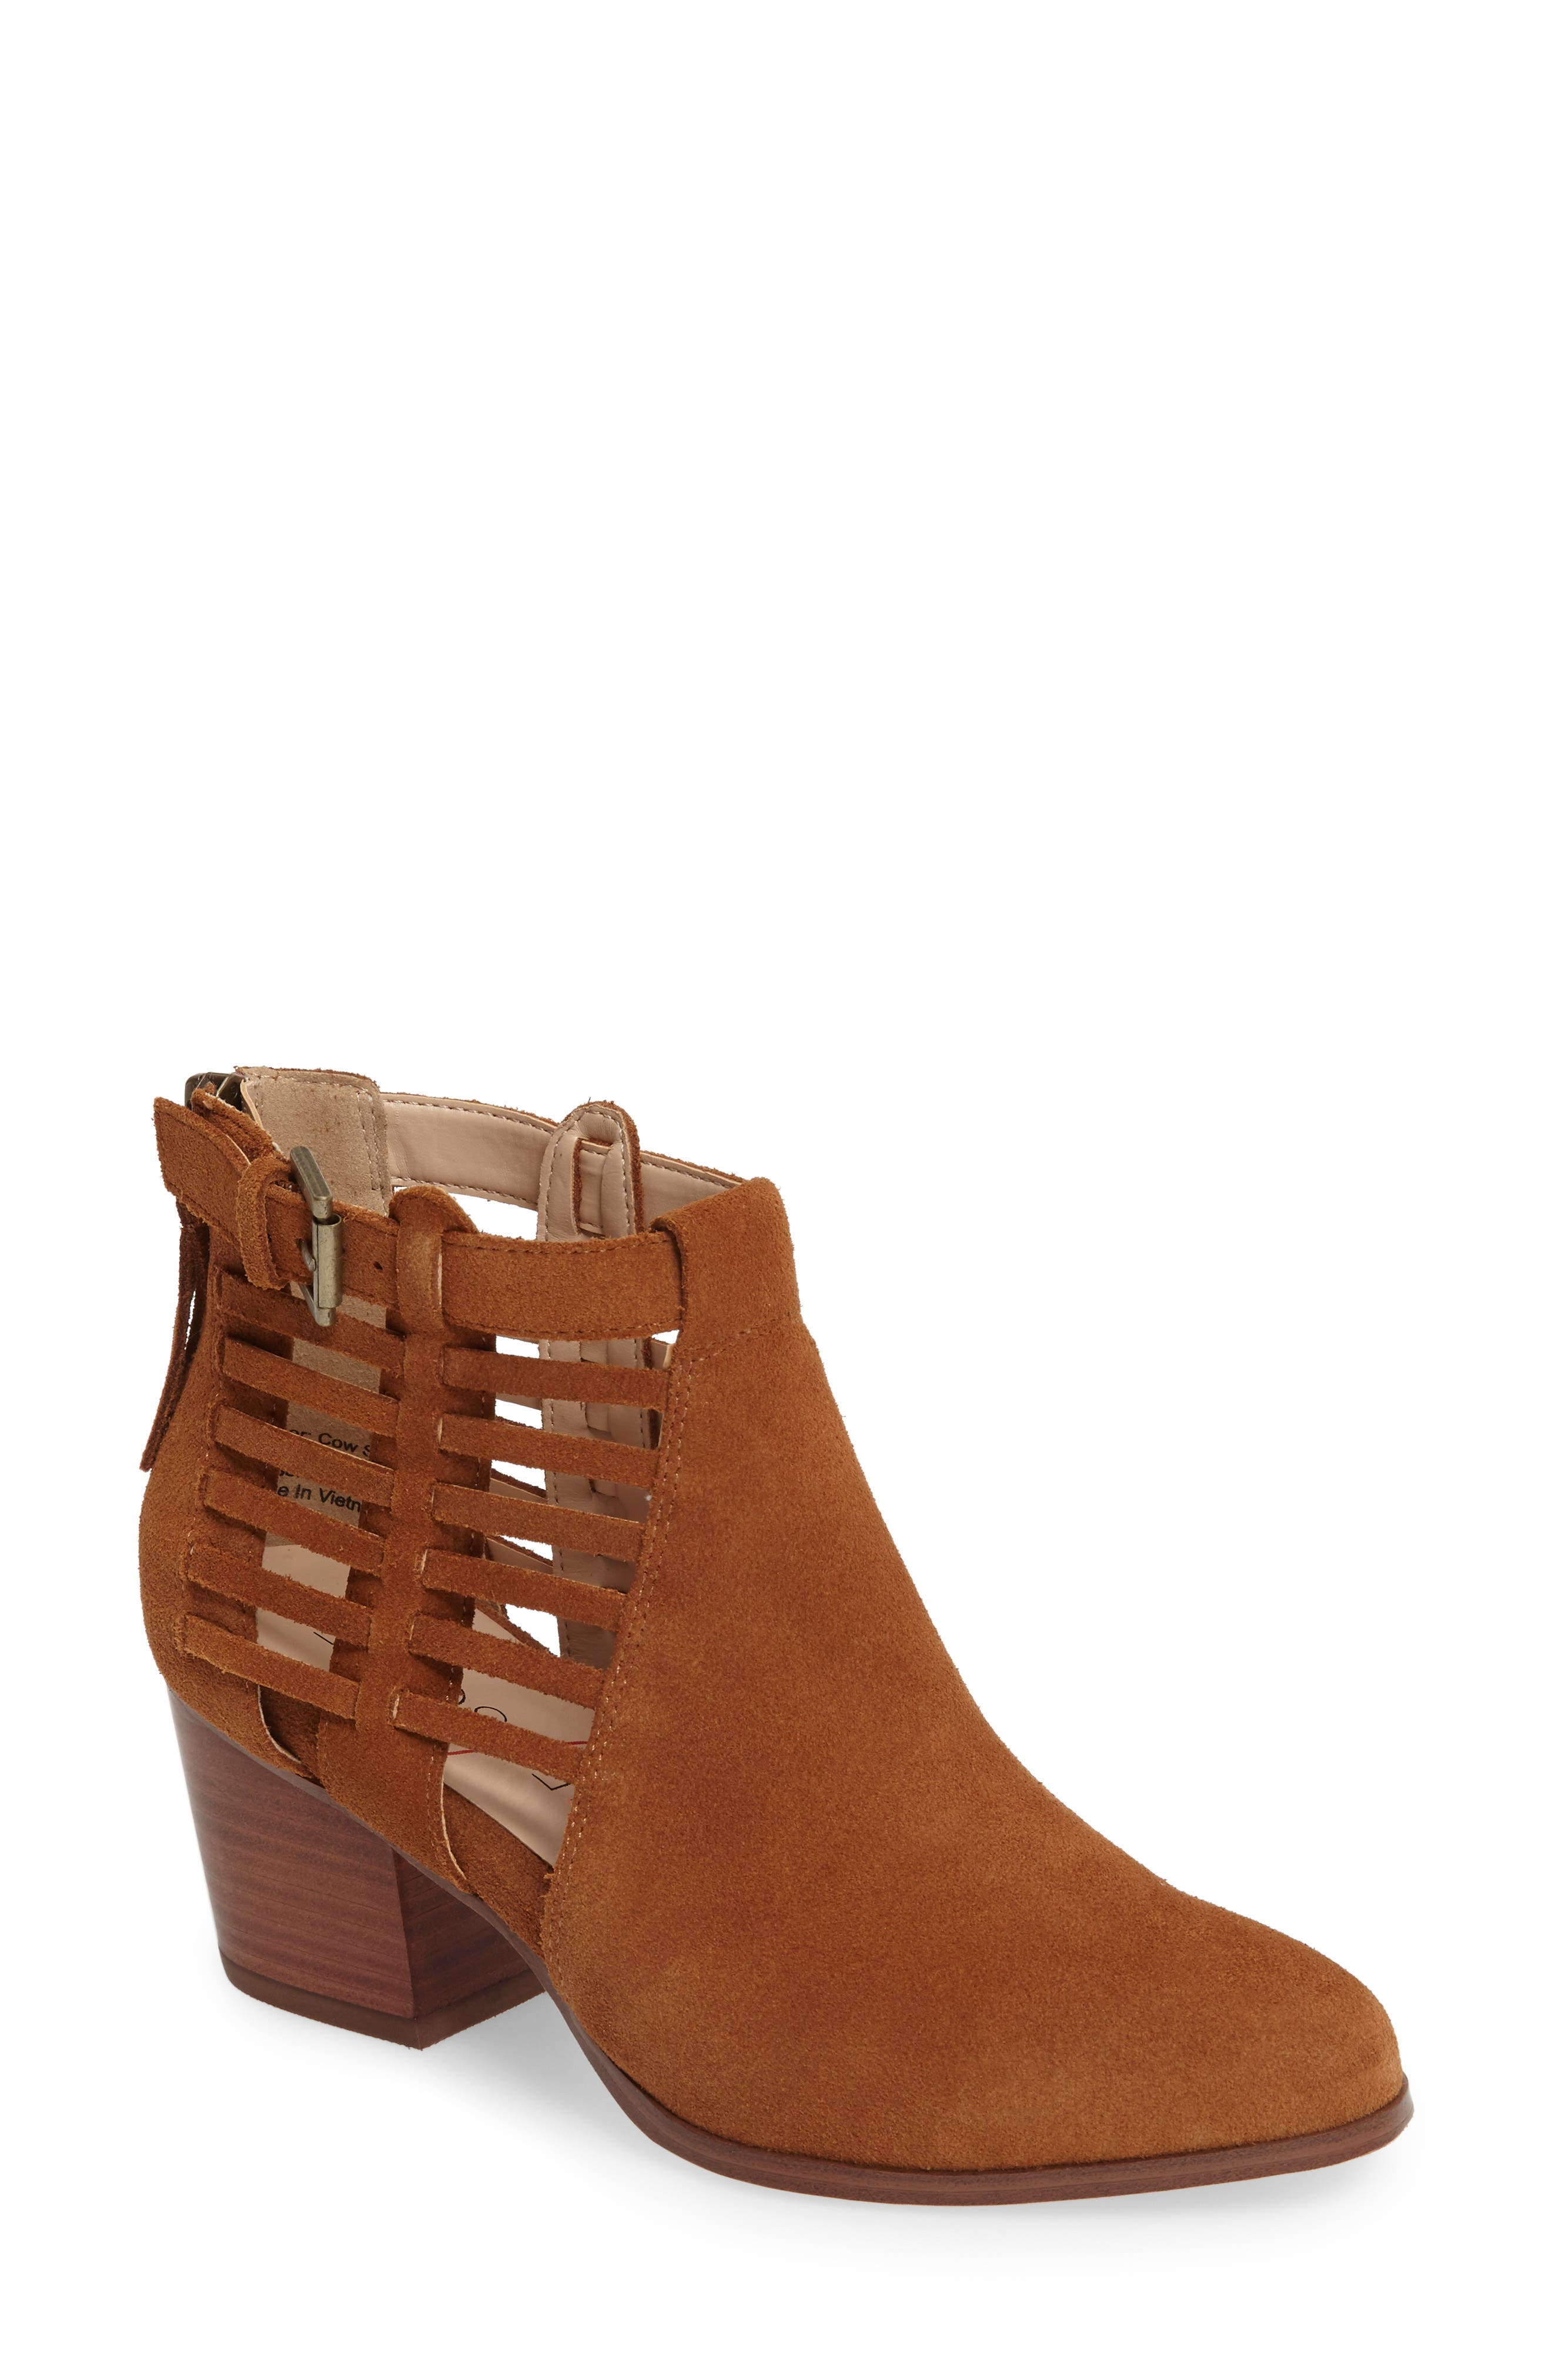 Main Image - Sole Society Ash Bootie (Women)